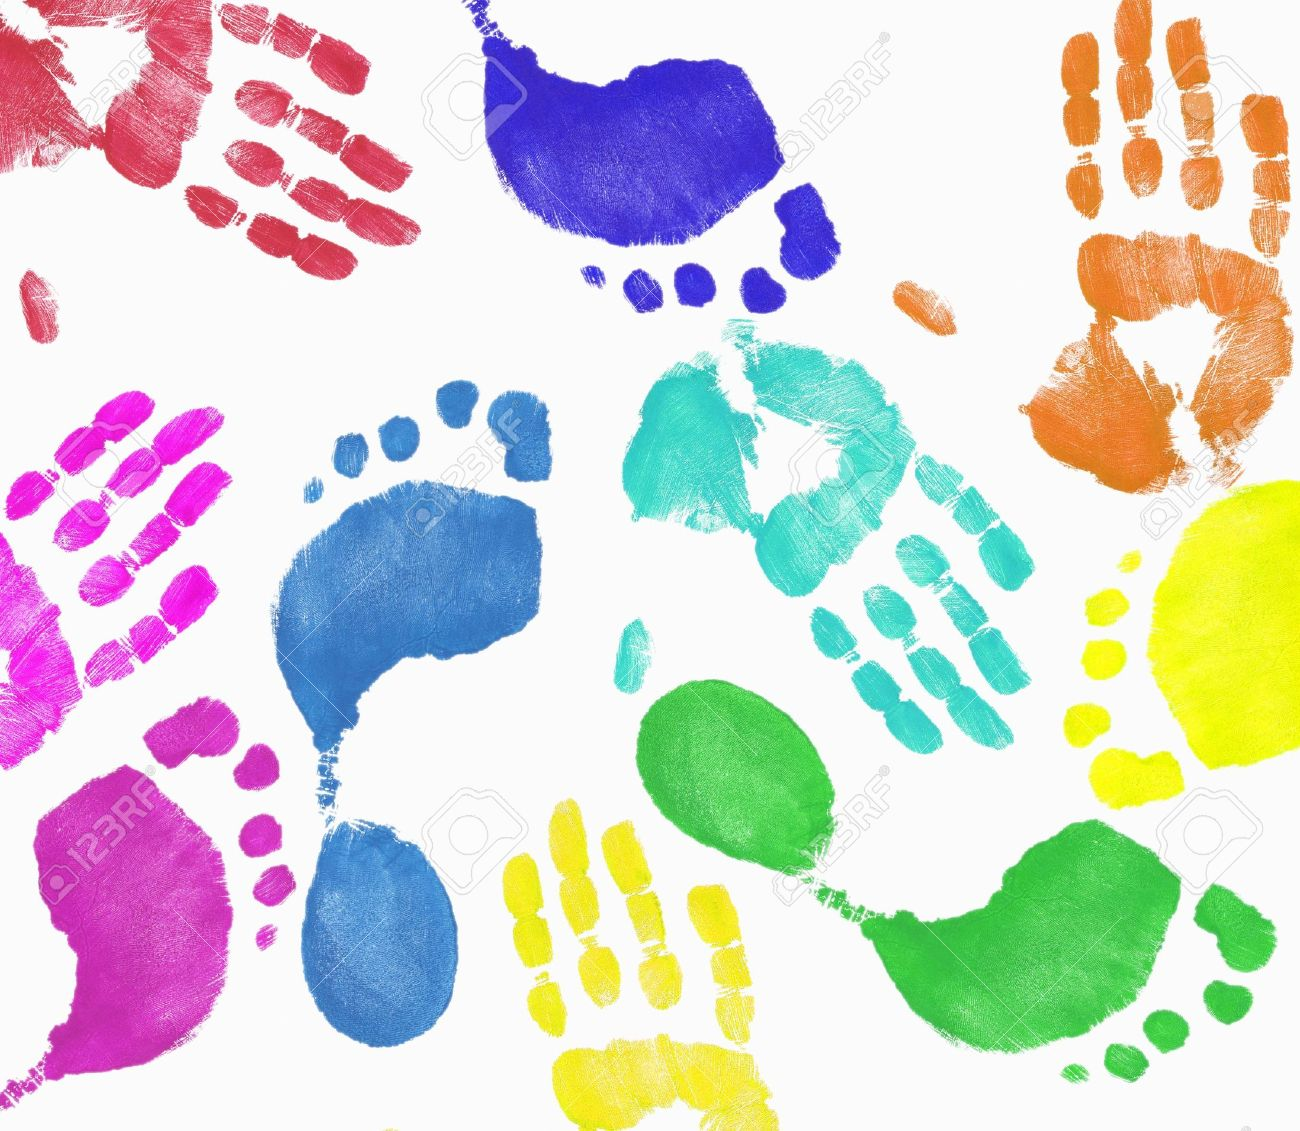 Multi Colored Finger Painted Hand And Footprint Pattern Stock.